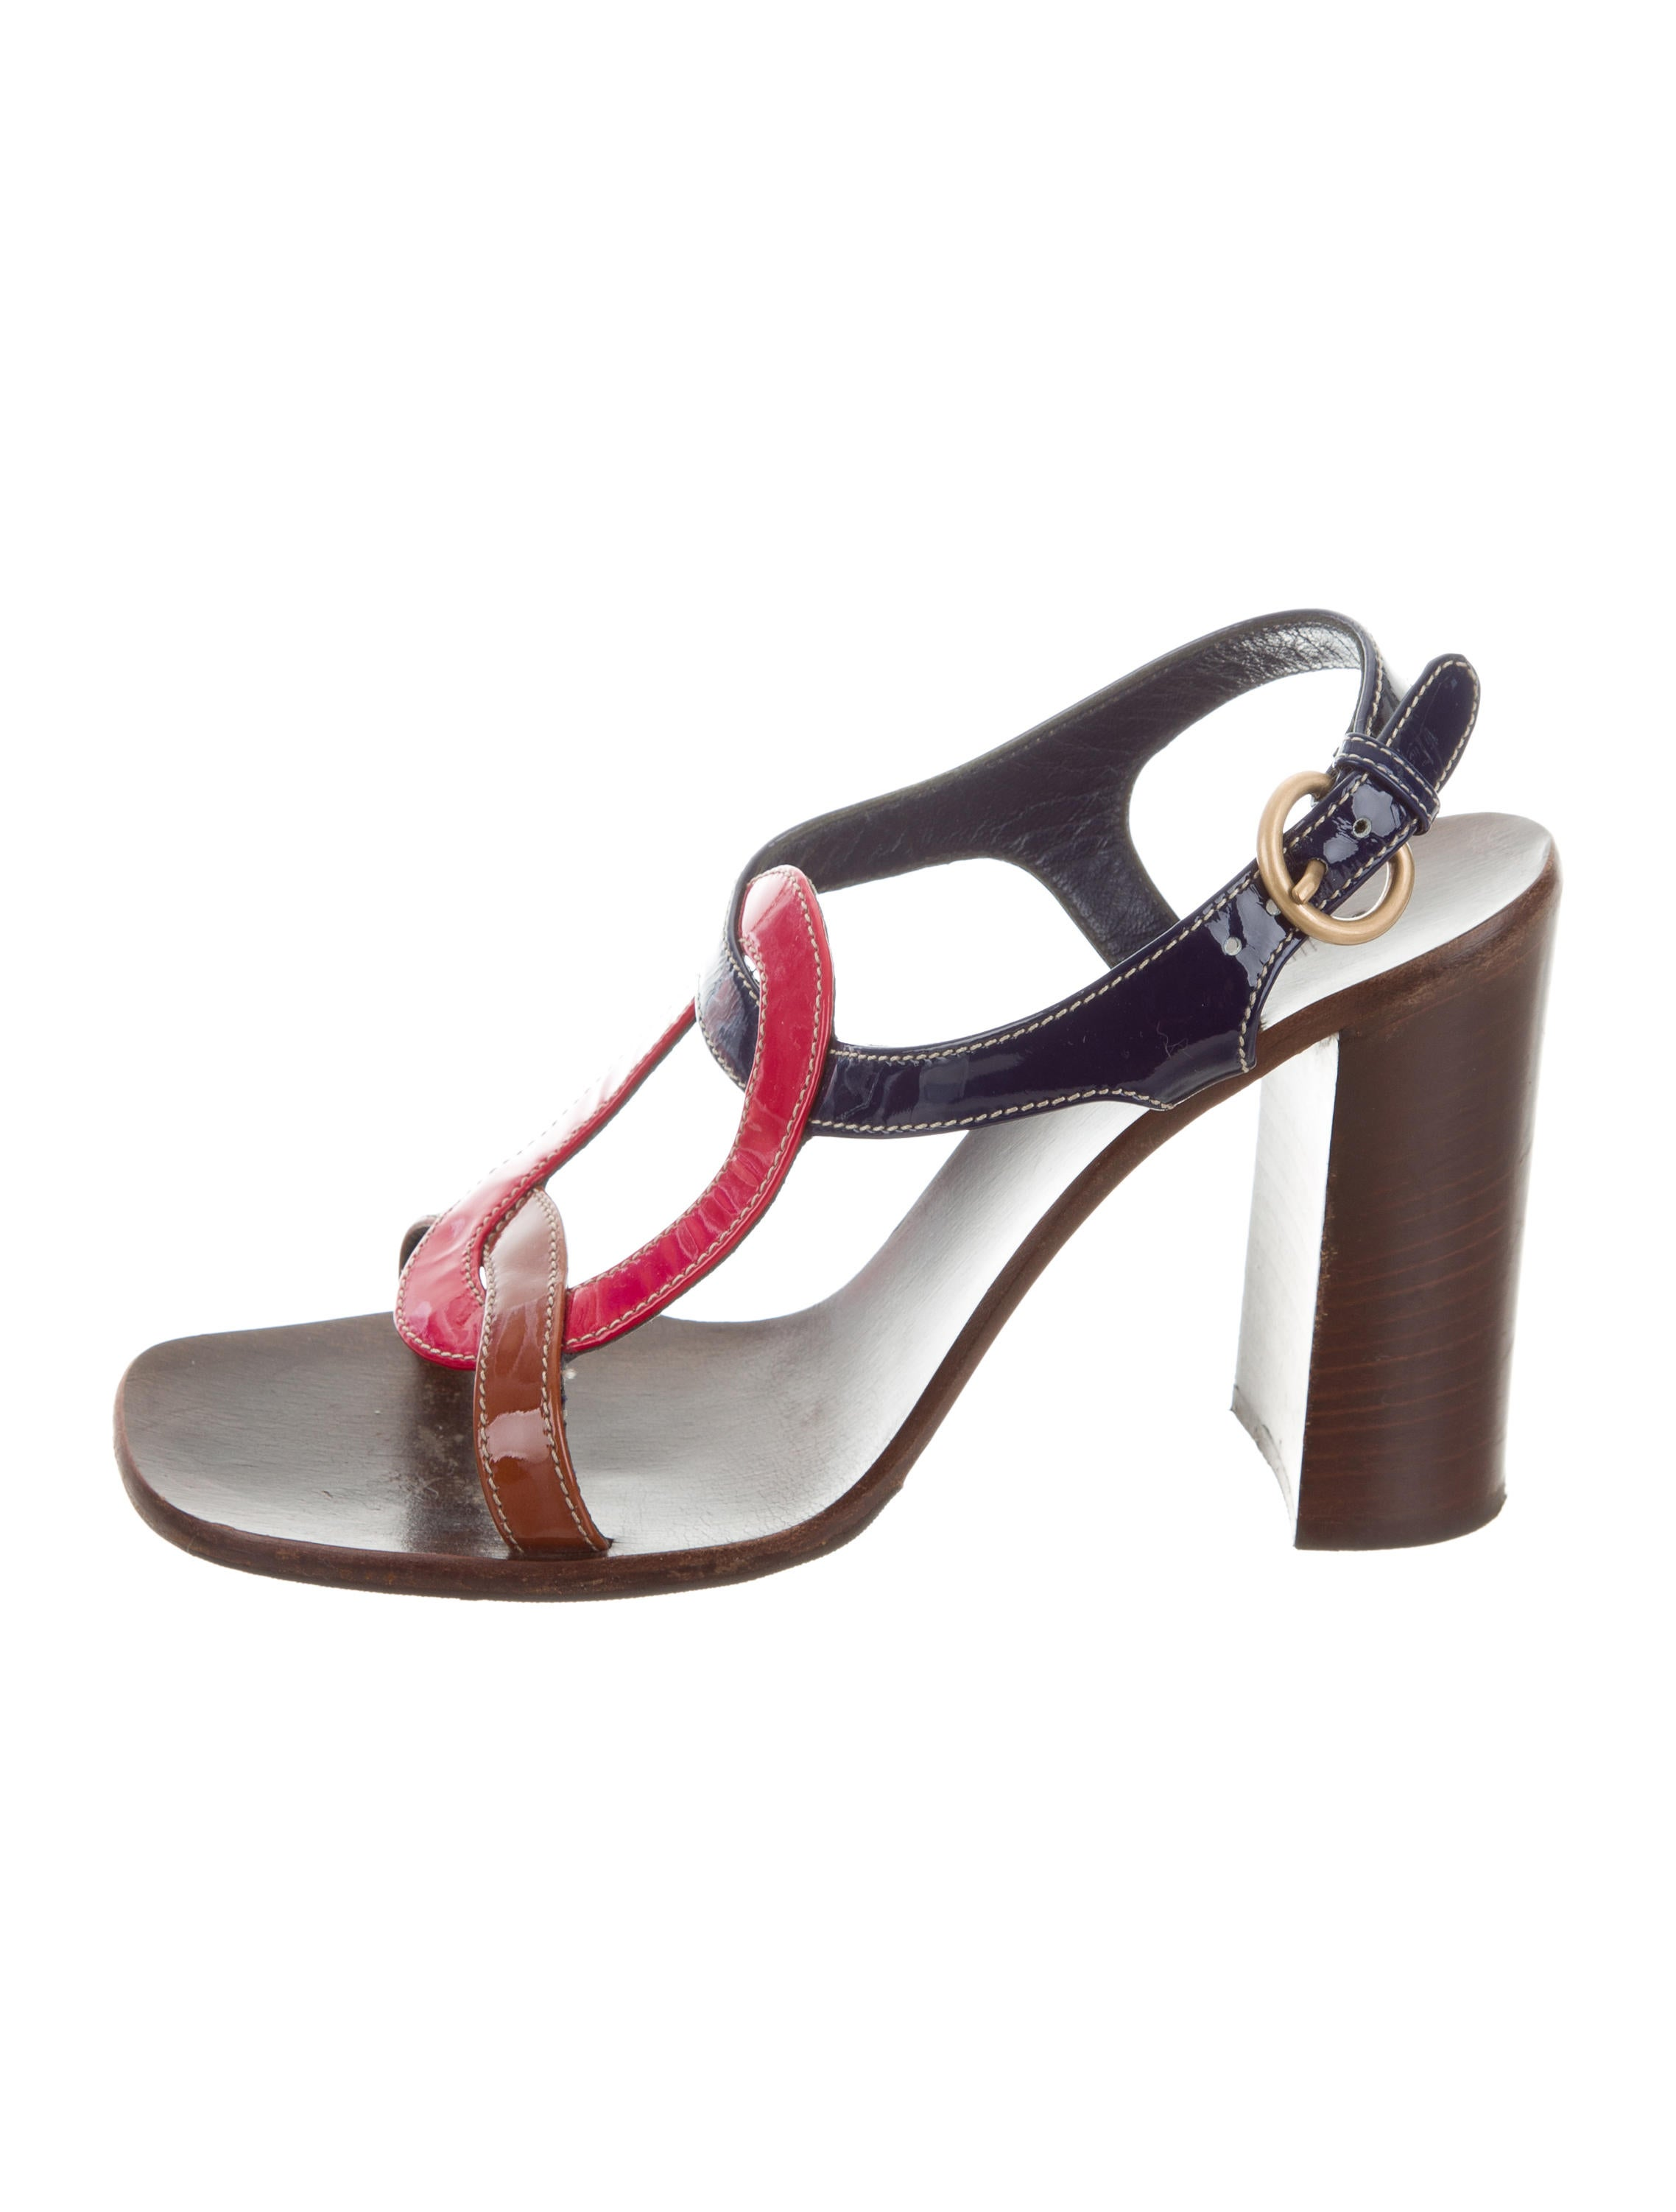 visa payment cheap online free shipping release dates Miu Miu Patent Leather Colorblock Sandals buy cheap Manchester egGGRDy